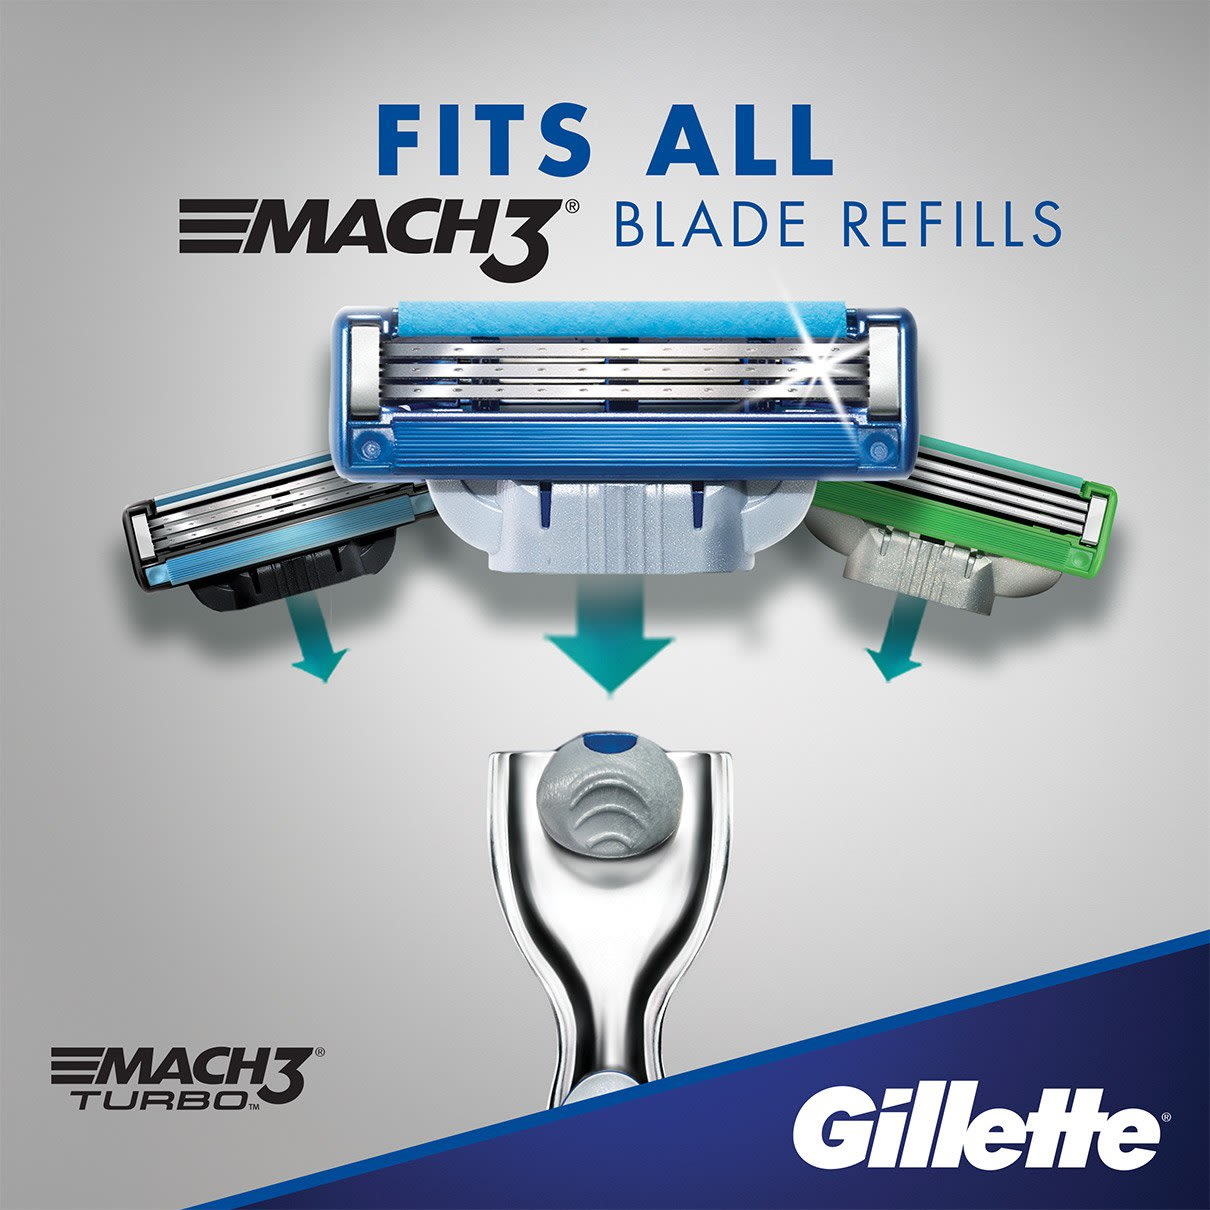 Fits all Mach3 blade refills